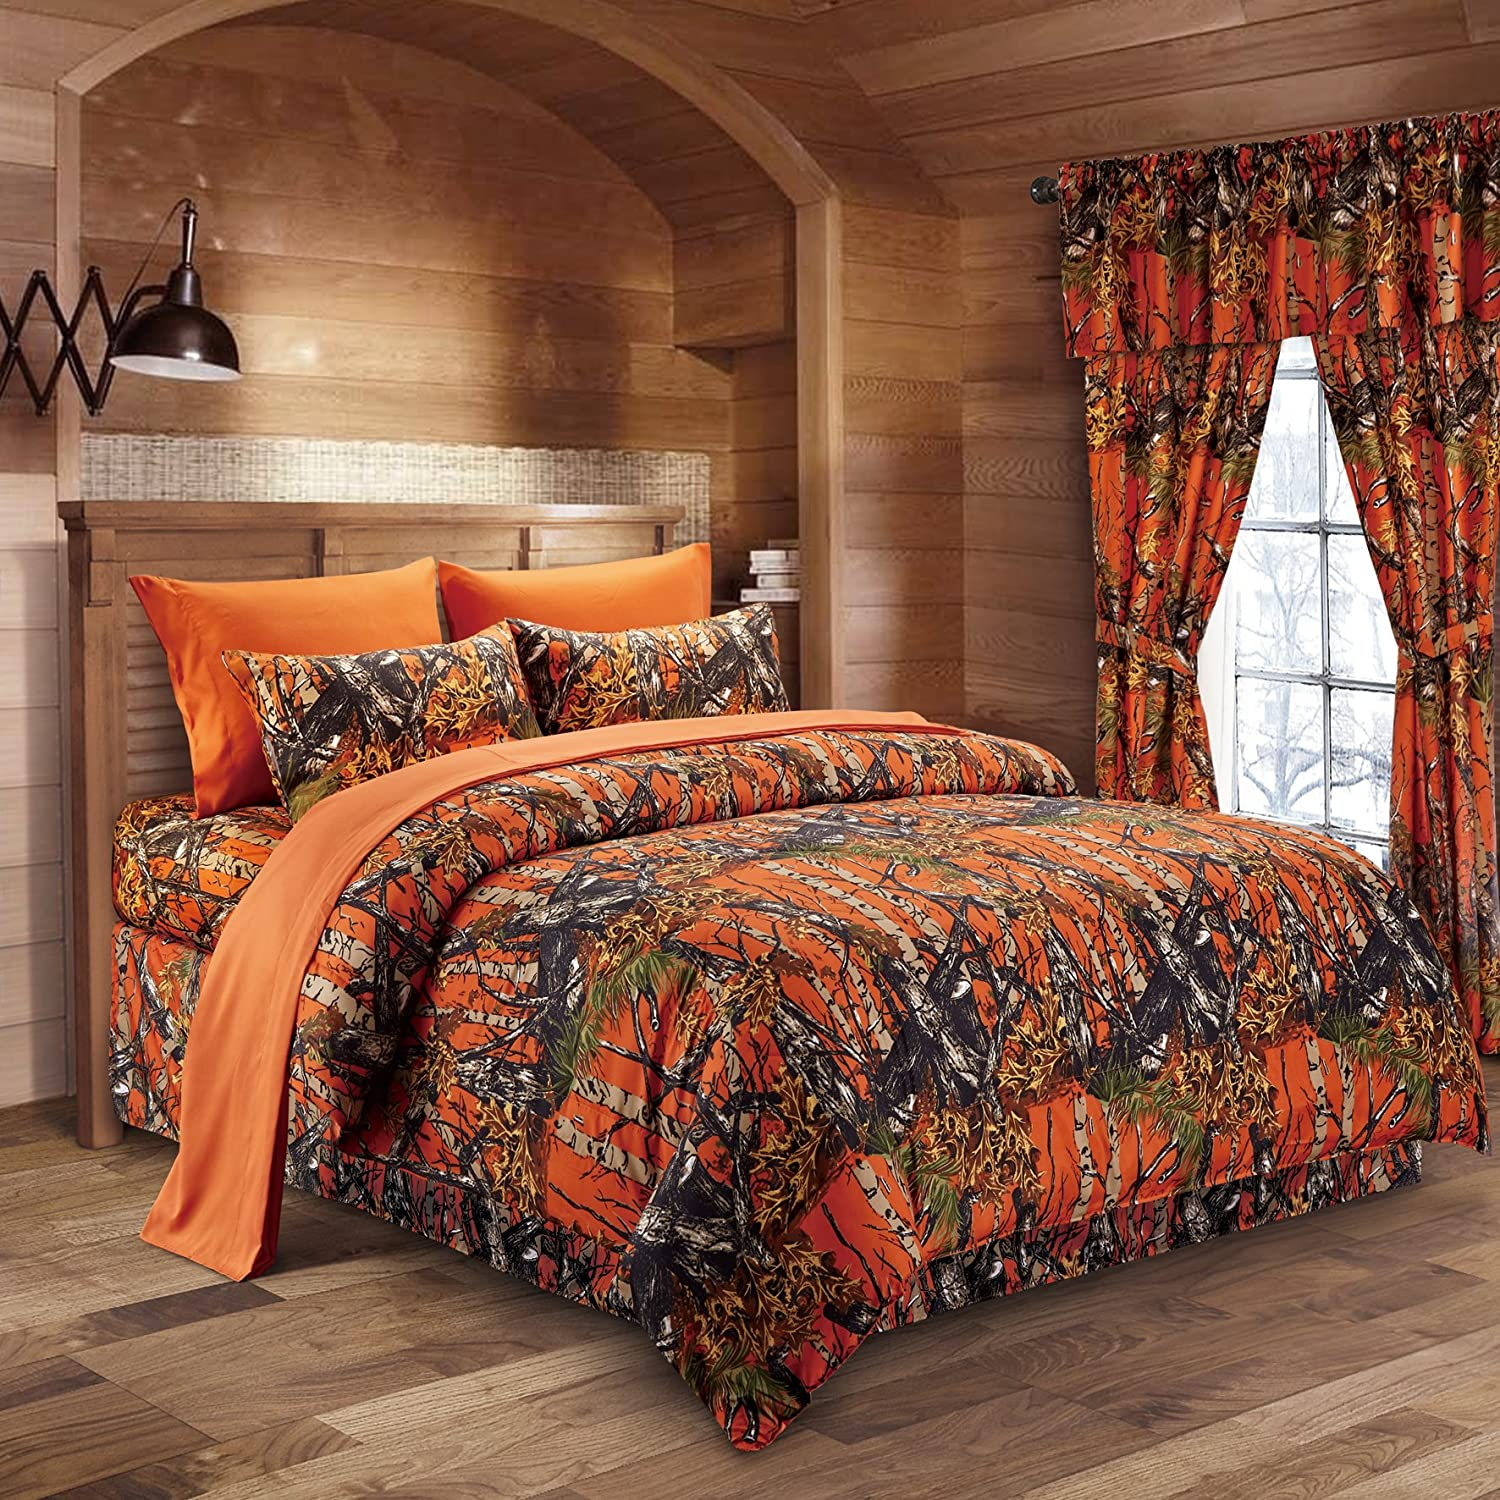 he Woods Orange Camouflage Twin 5pc Premium Luxury Comforter